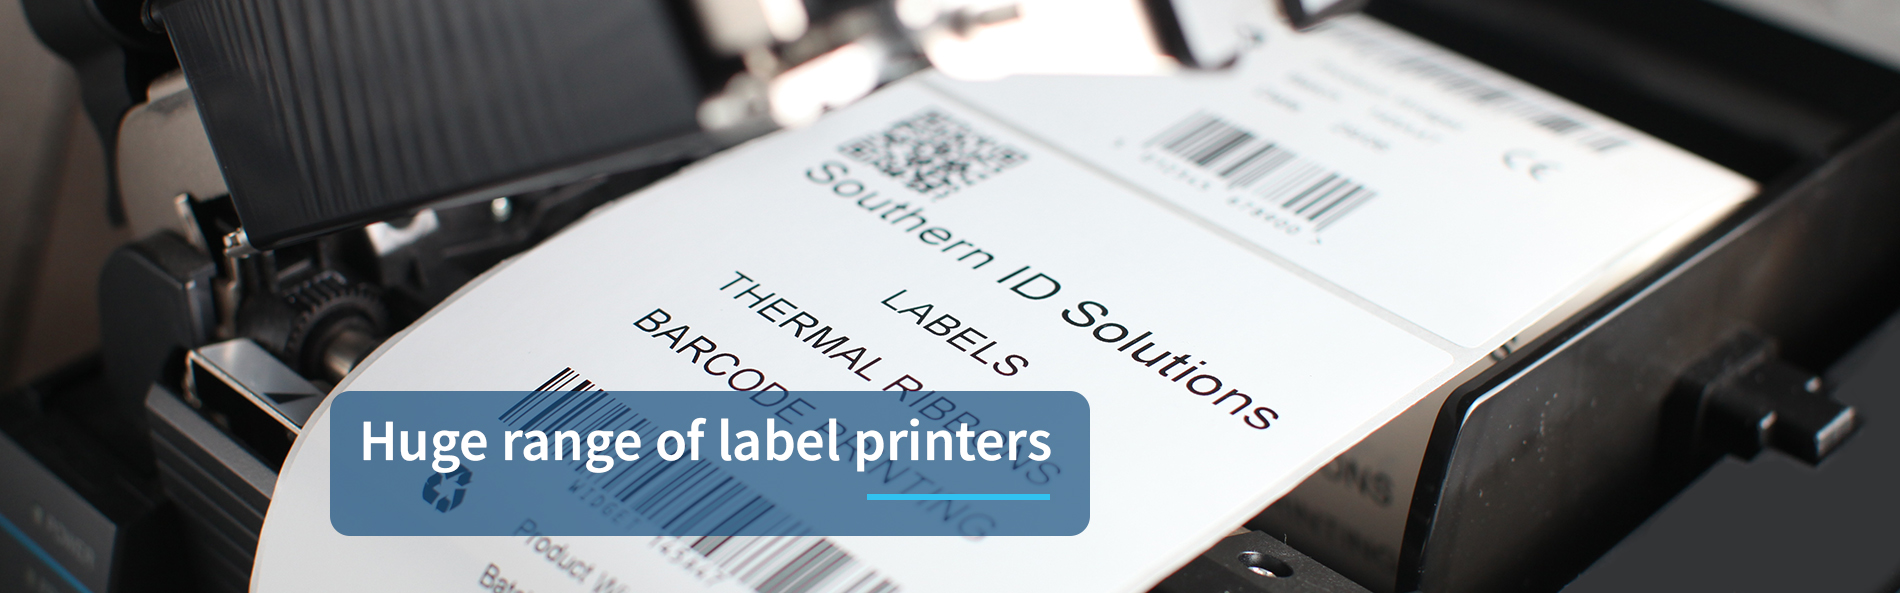 Huge Range of Label Printers